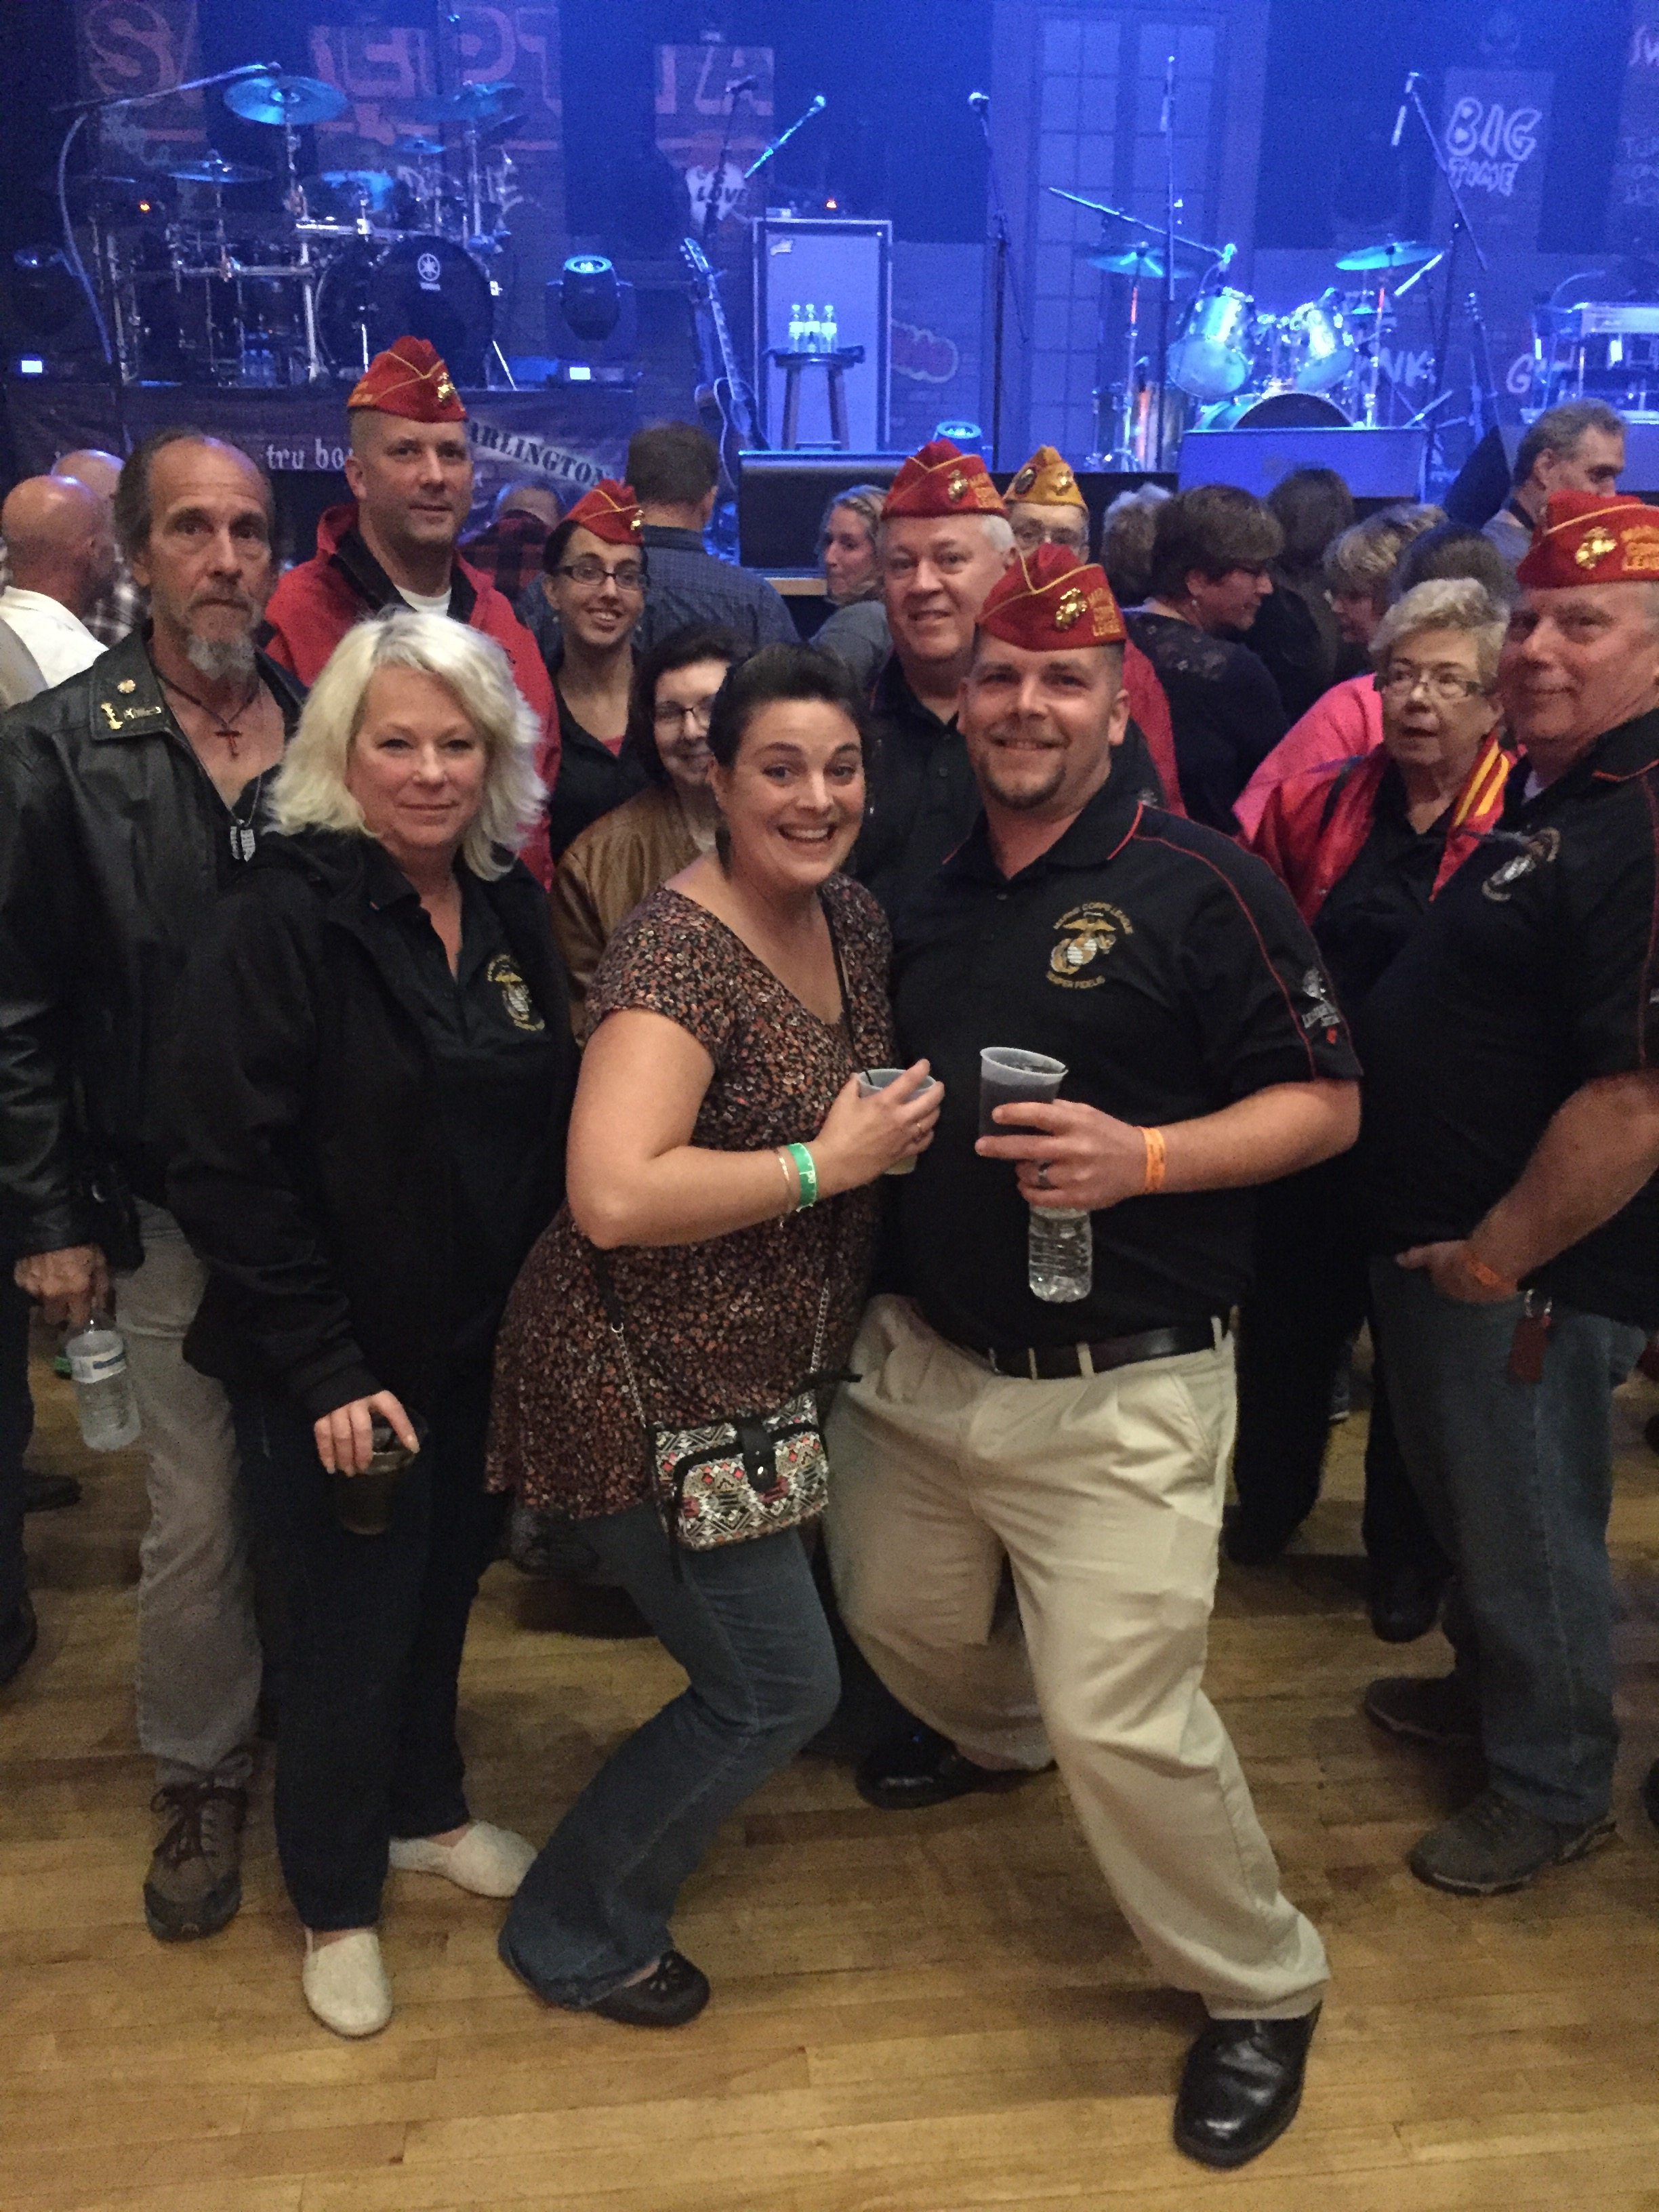 Detachment members and their spouses attended a Trace Adkins concert, in which they presented Mr. Adkins with a detachment polo shirt.